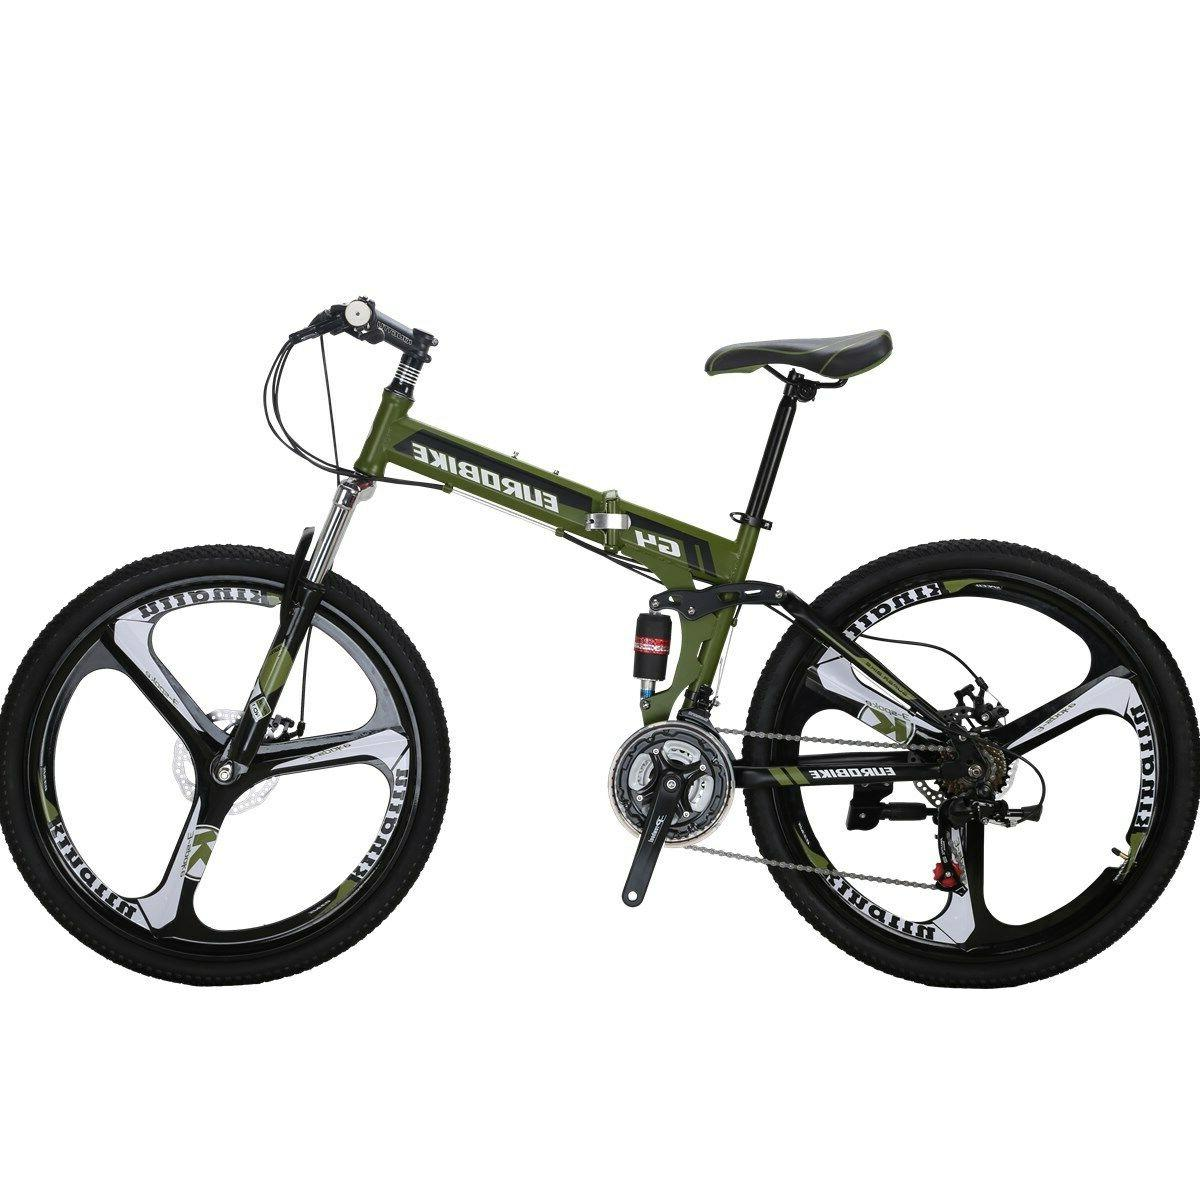 "Mountain Frame 26"" 21 Folding Bicycle Full Suspension"